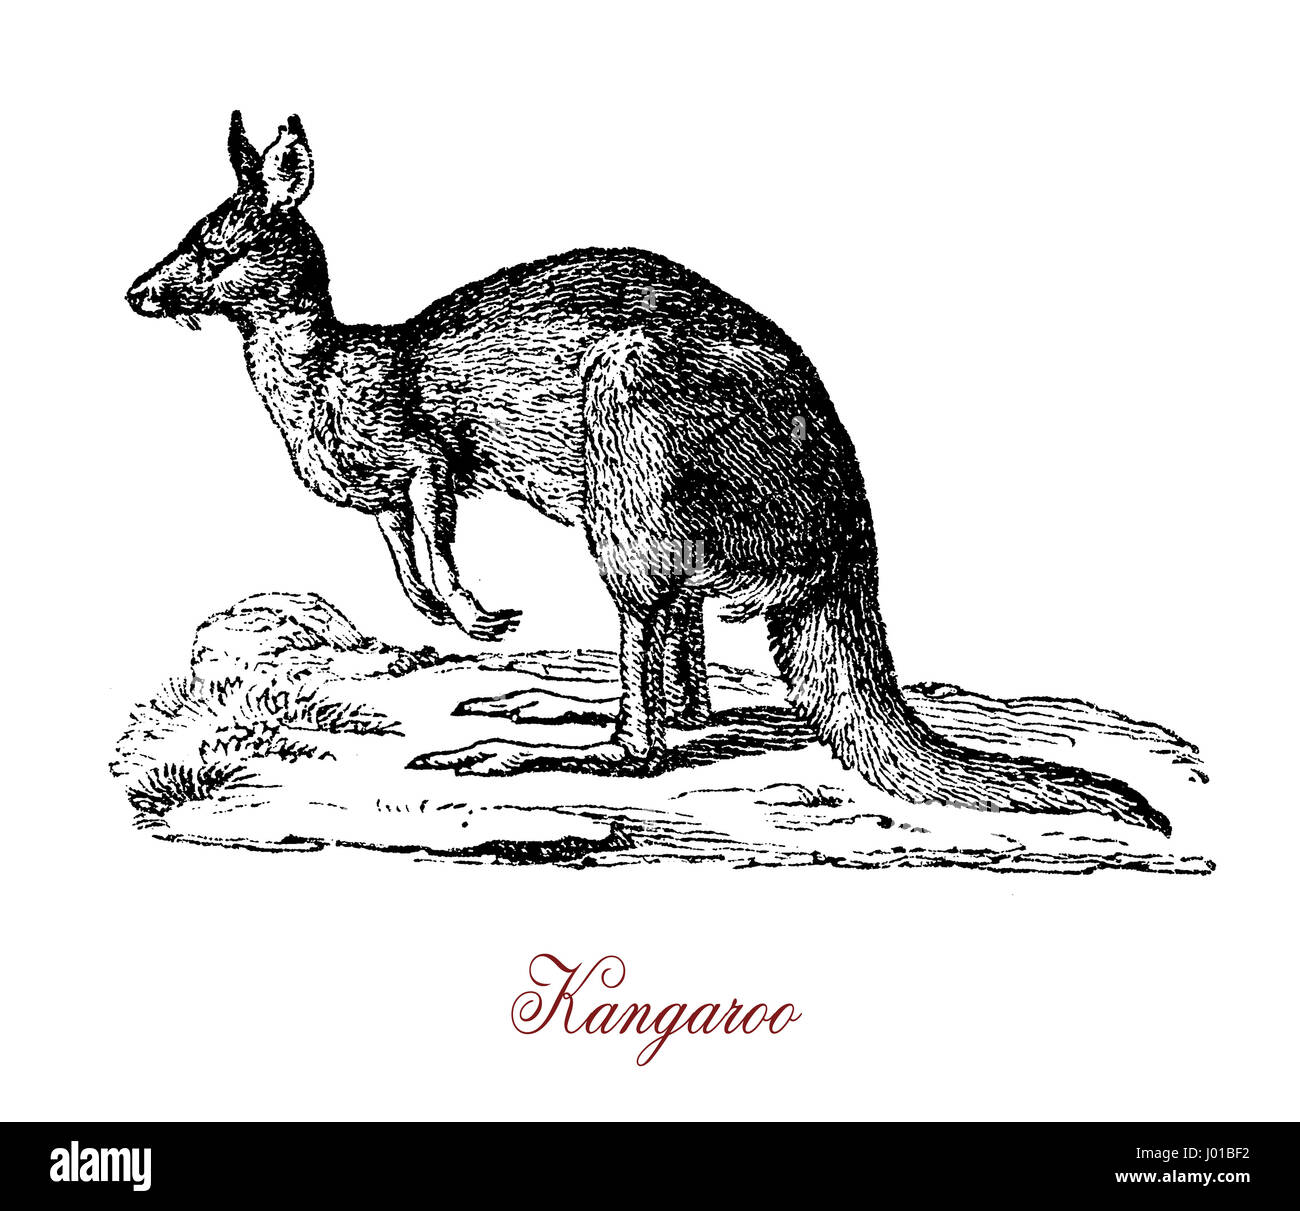 The kangaroo is the largest and most popular marsupial. It has large, powerful hind legs, large feet adapted for - Stock Image